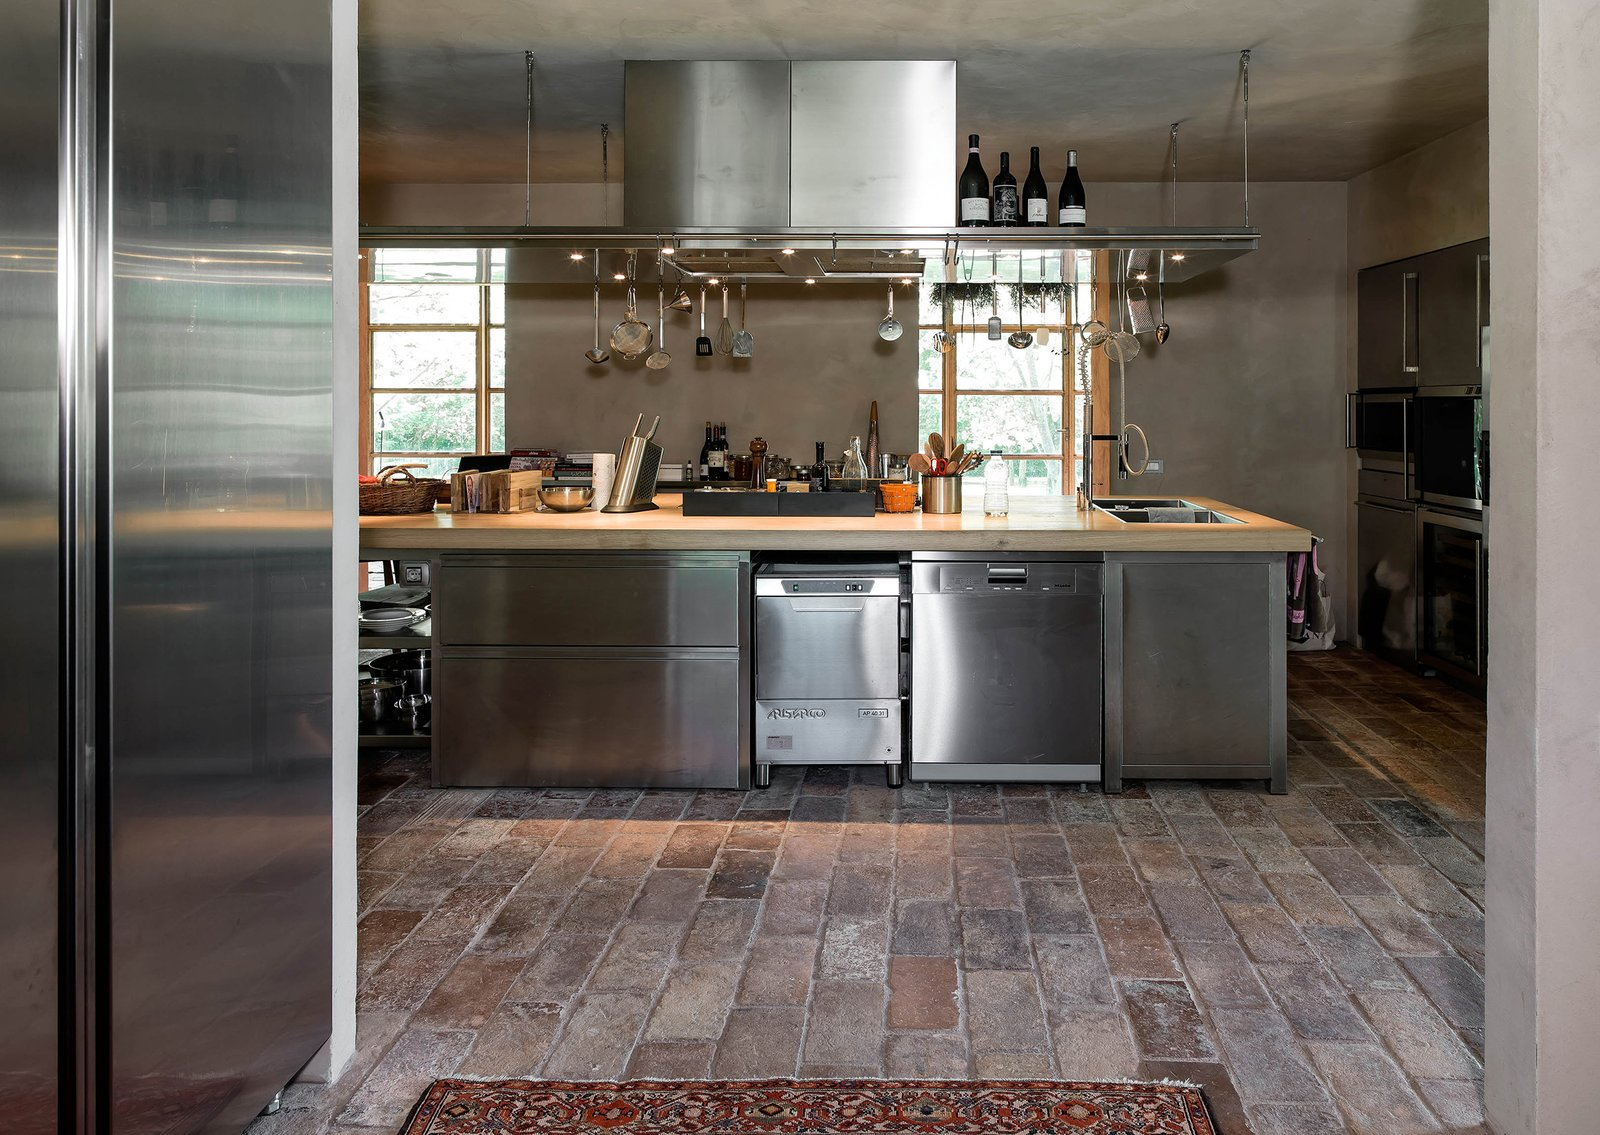 Tagged: Kitchen, Wood Counter, Metal Cabinet, Laminate Cabinet, Cooktops, and Dishwasher.  Country House by zanon architetti associati